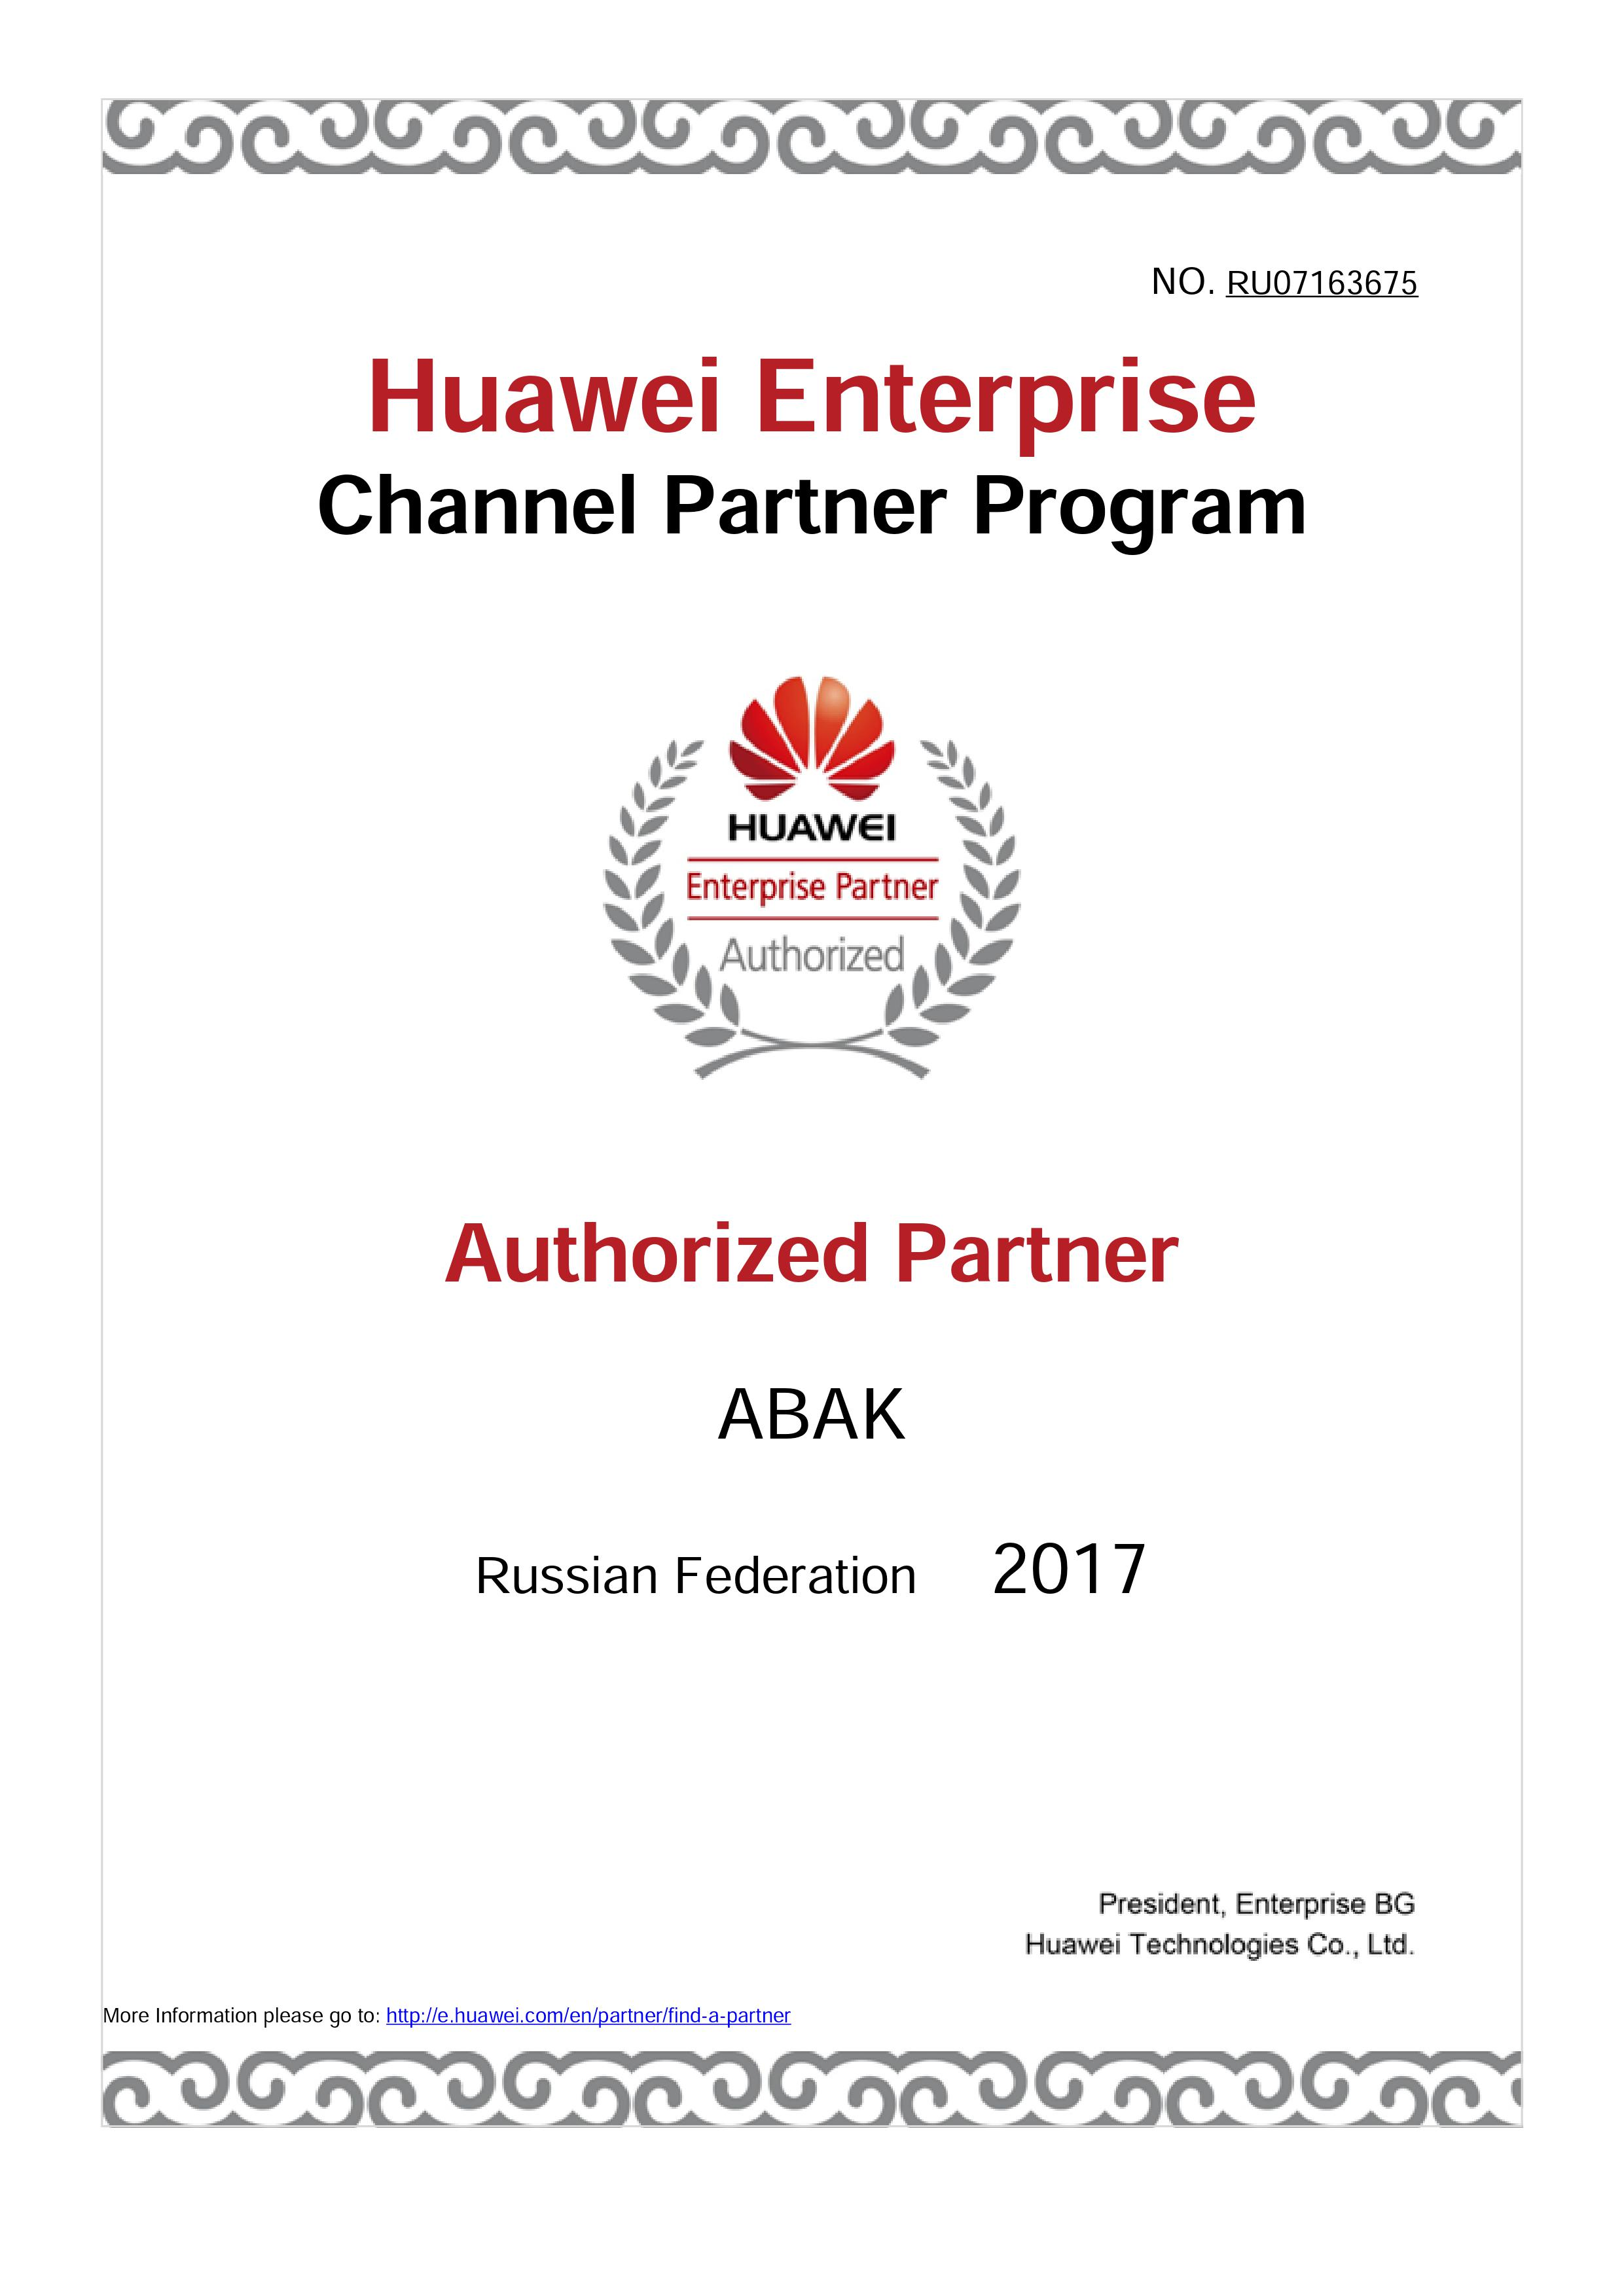 Huawei Enterprise Authorized Partner